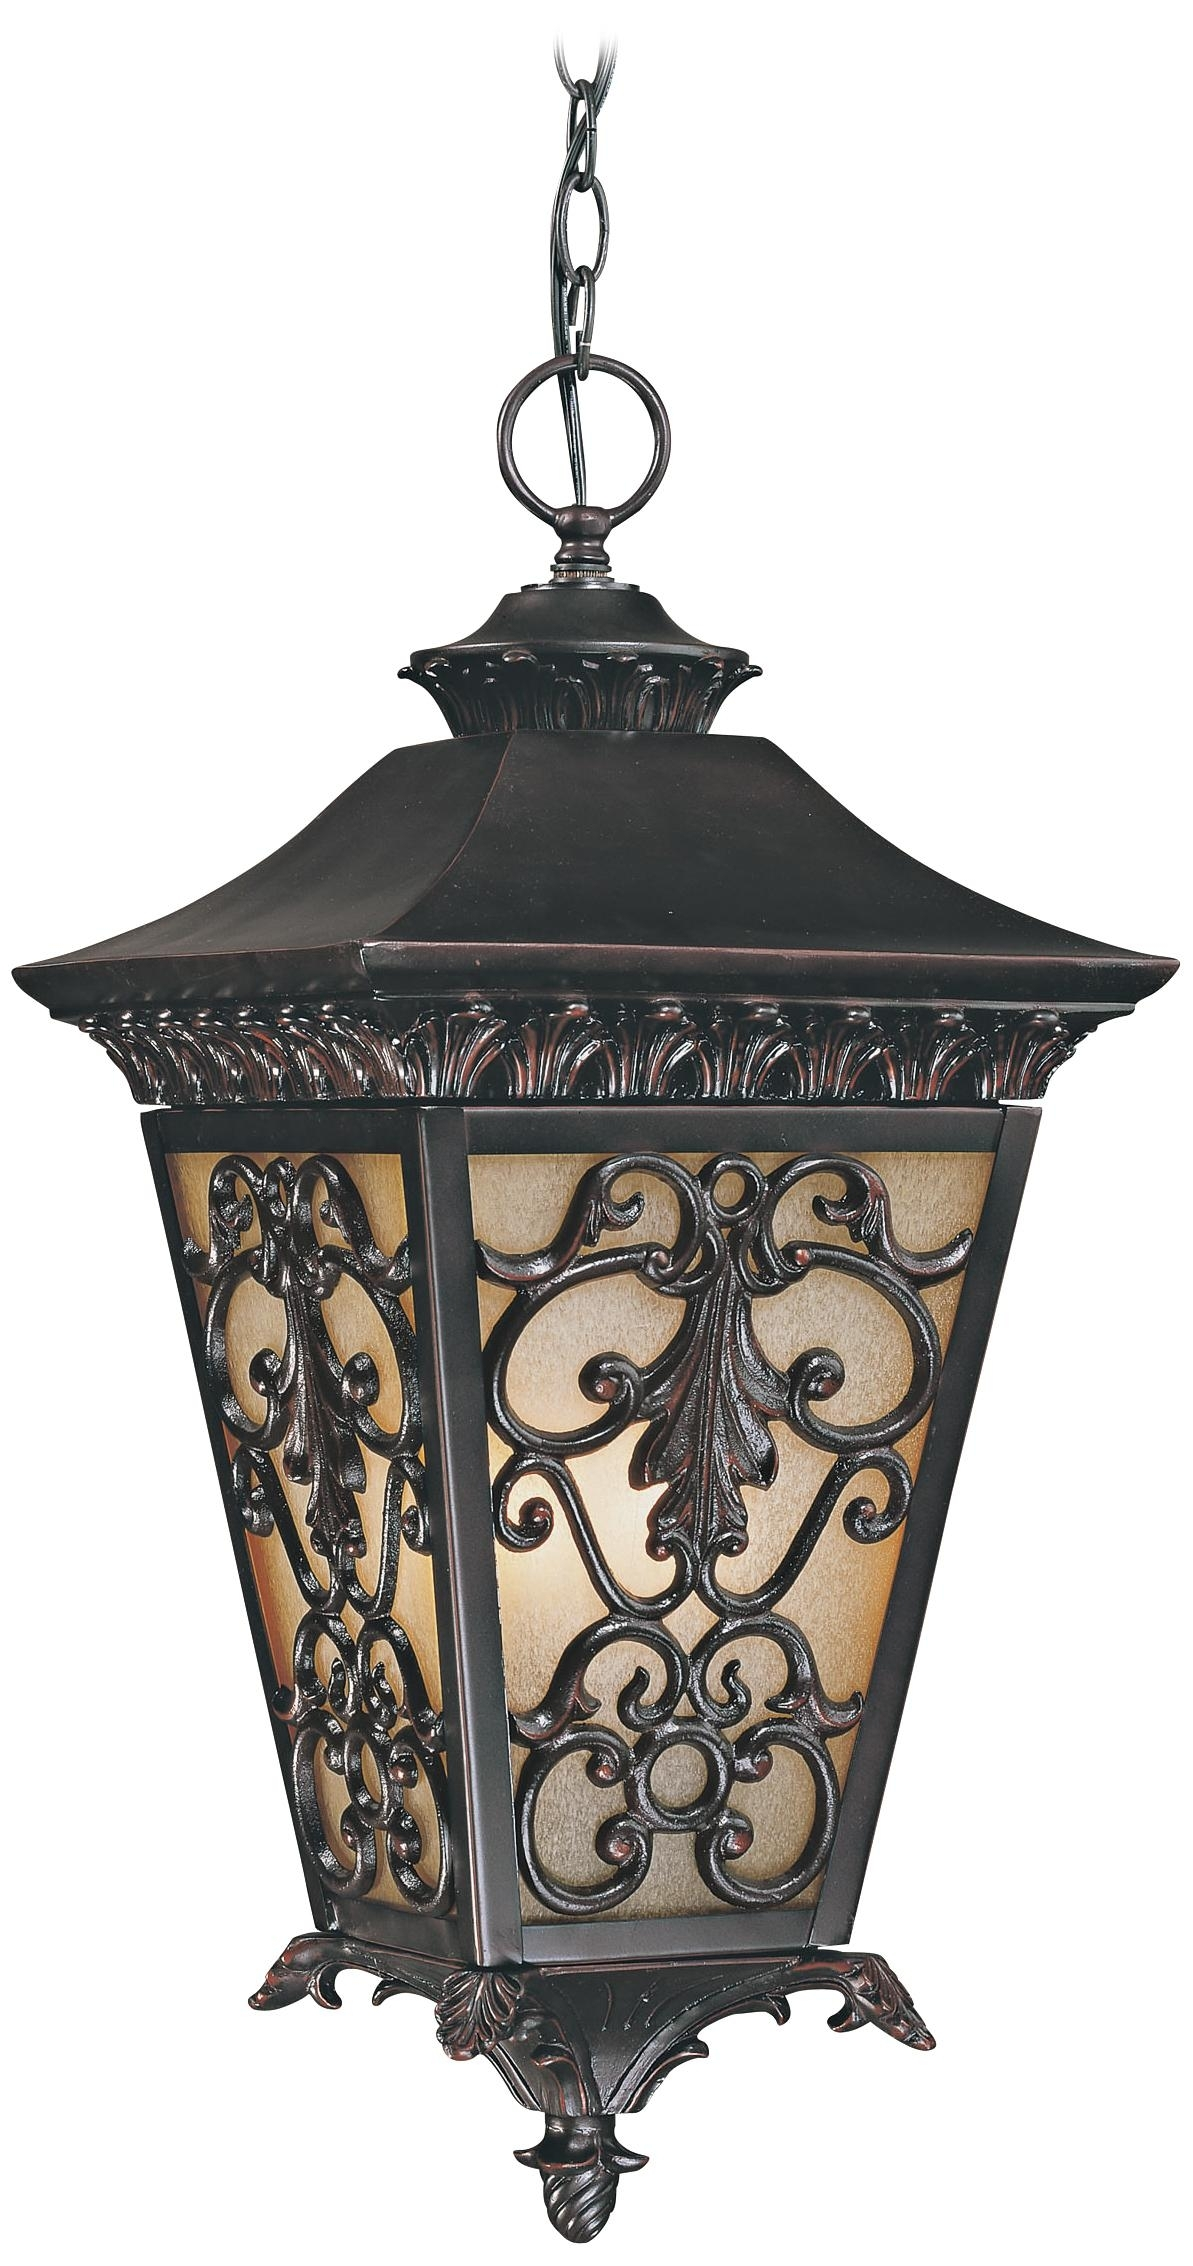 Bientina Collection 23 1/4 High Outdoor Hanging Light – | Tuscan Old Inside Outdoor Hanging Wall Lanterns (View 5 of 15)